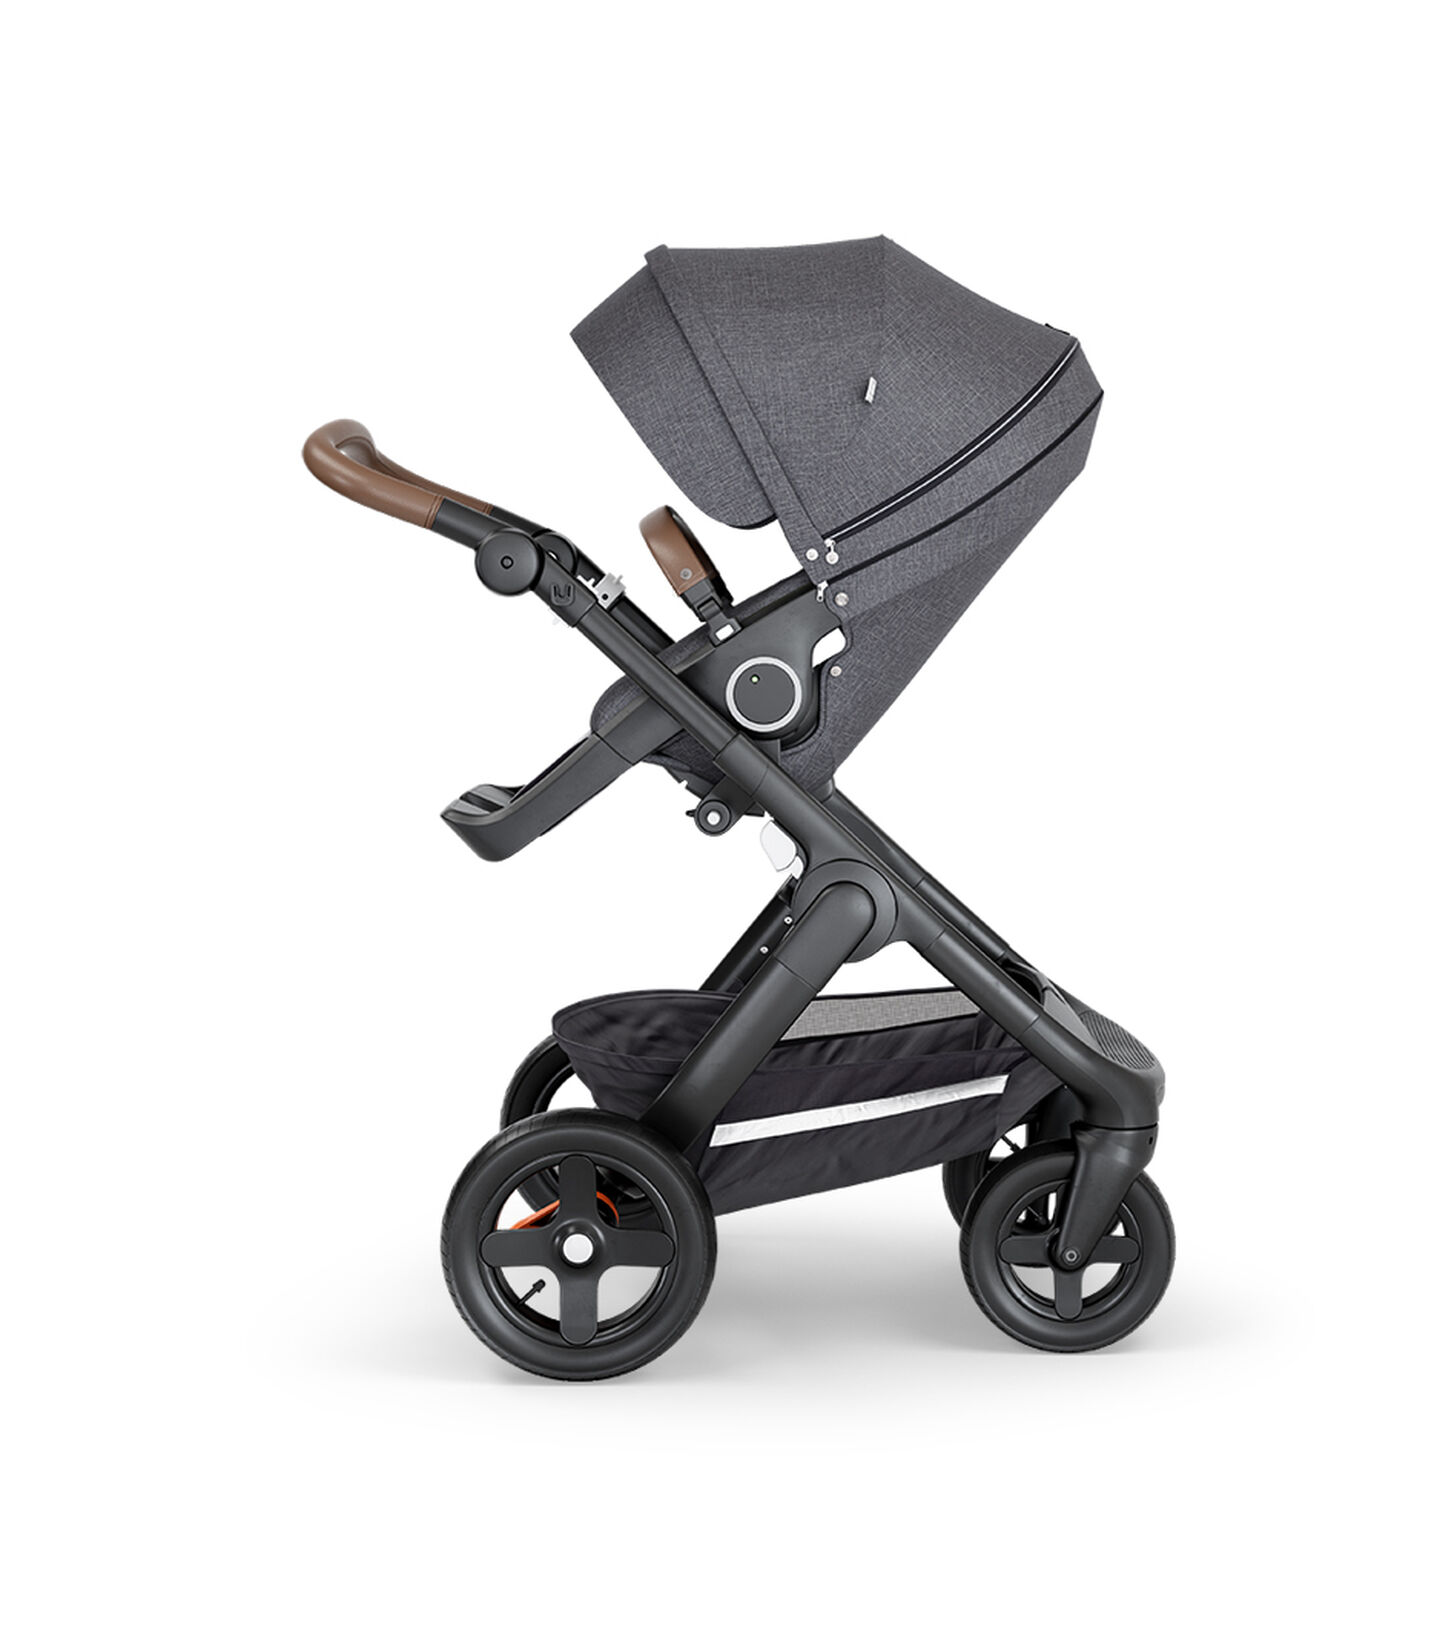 Stokke® Trailz™ with Black Chassis, Brown Leatherette and Terrain Wheels. Stokke® Stroller Seat, Black Melange.